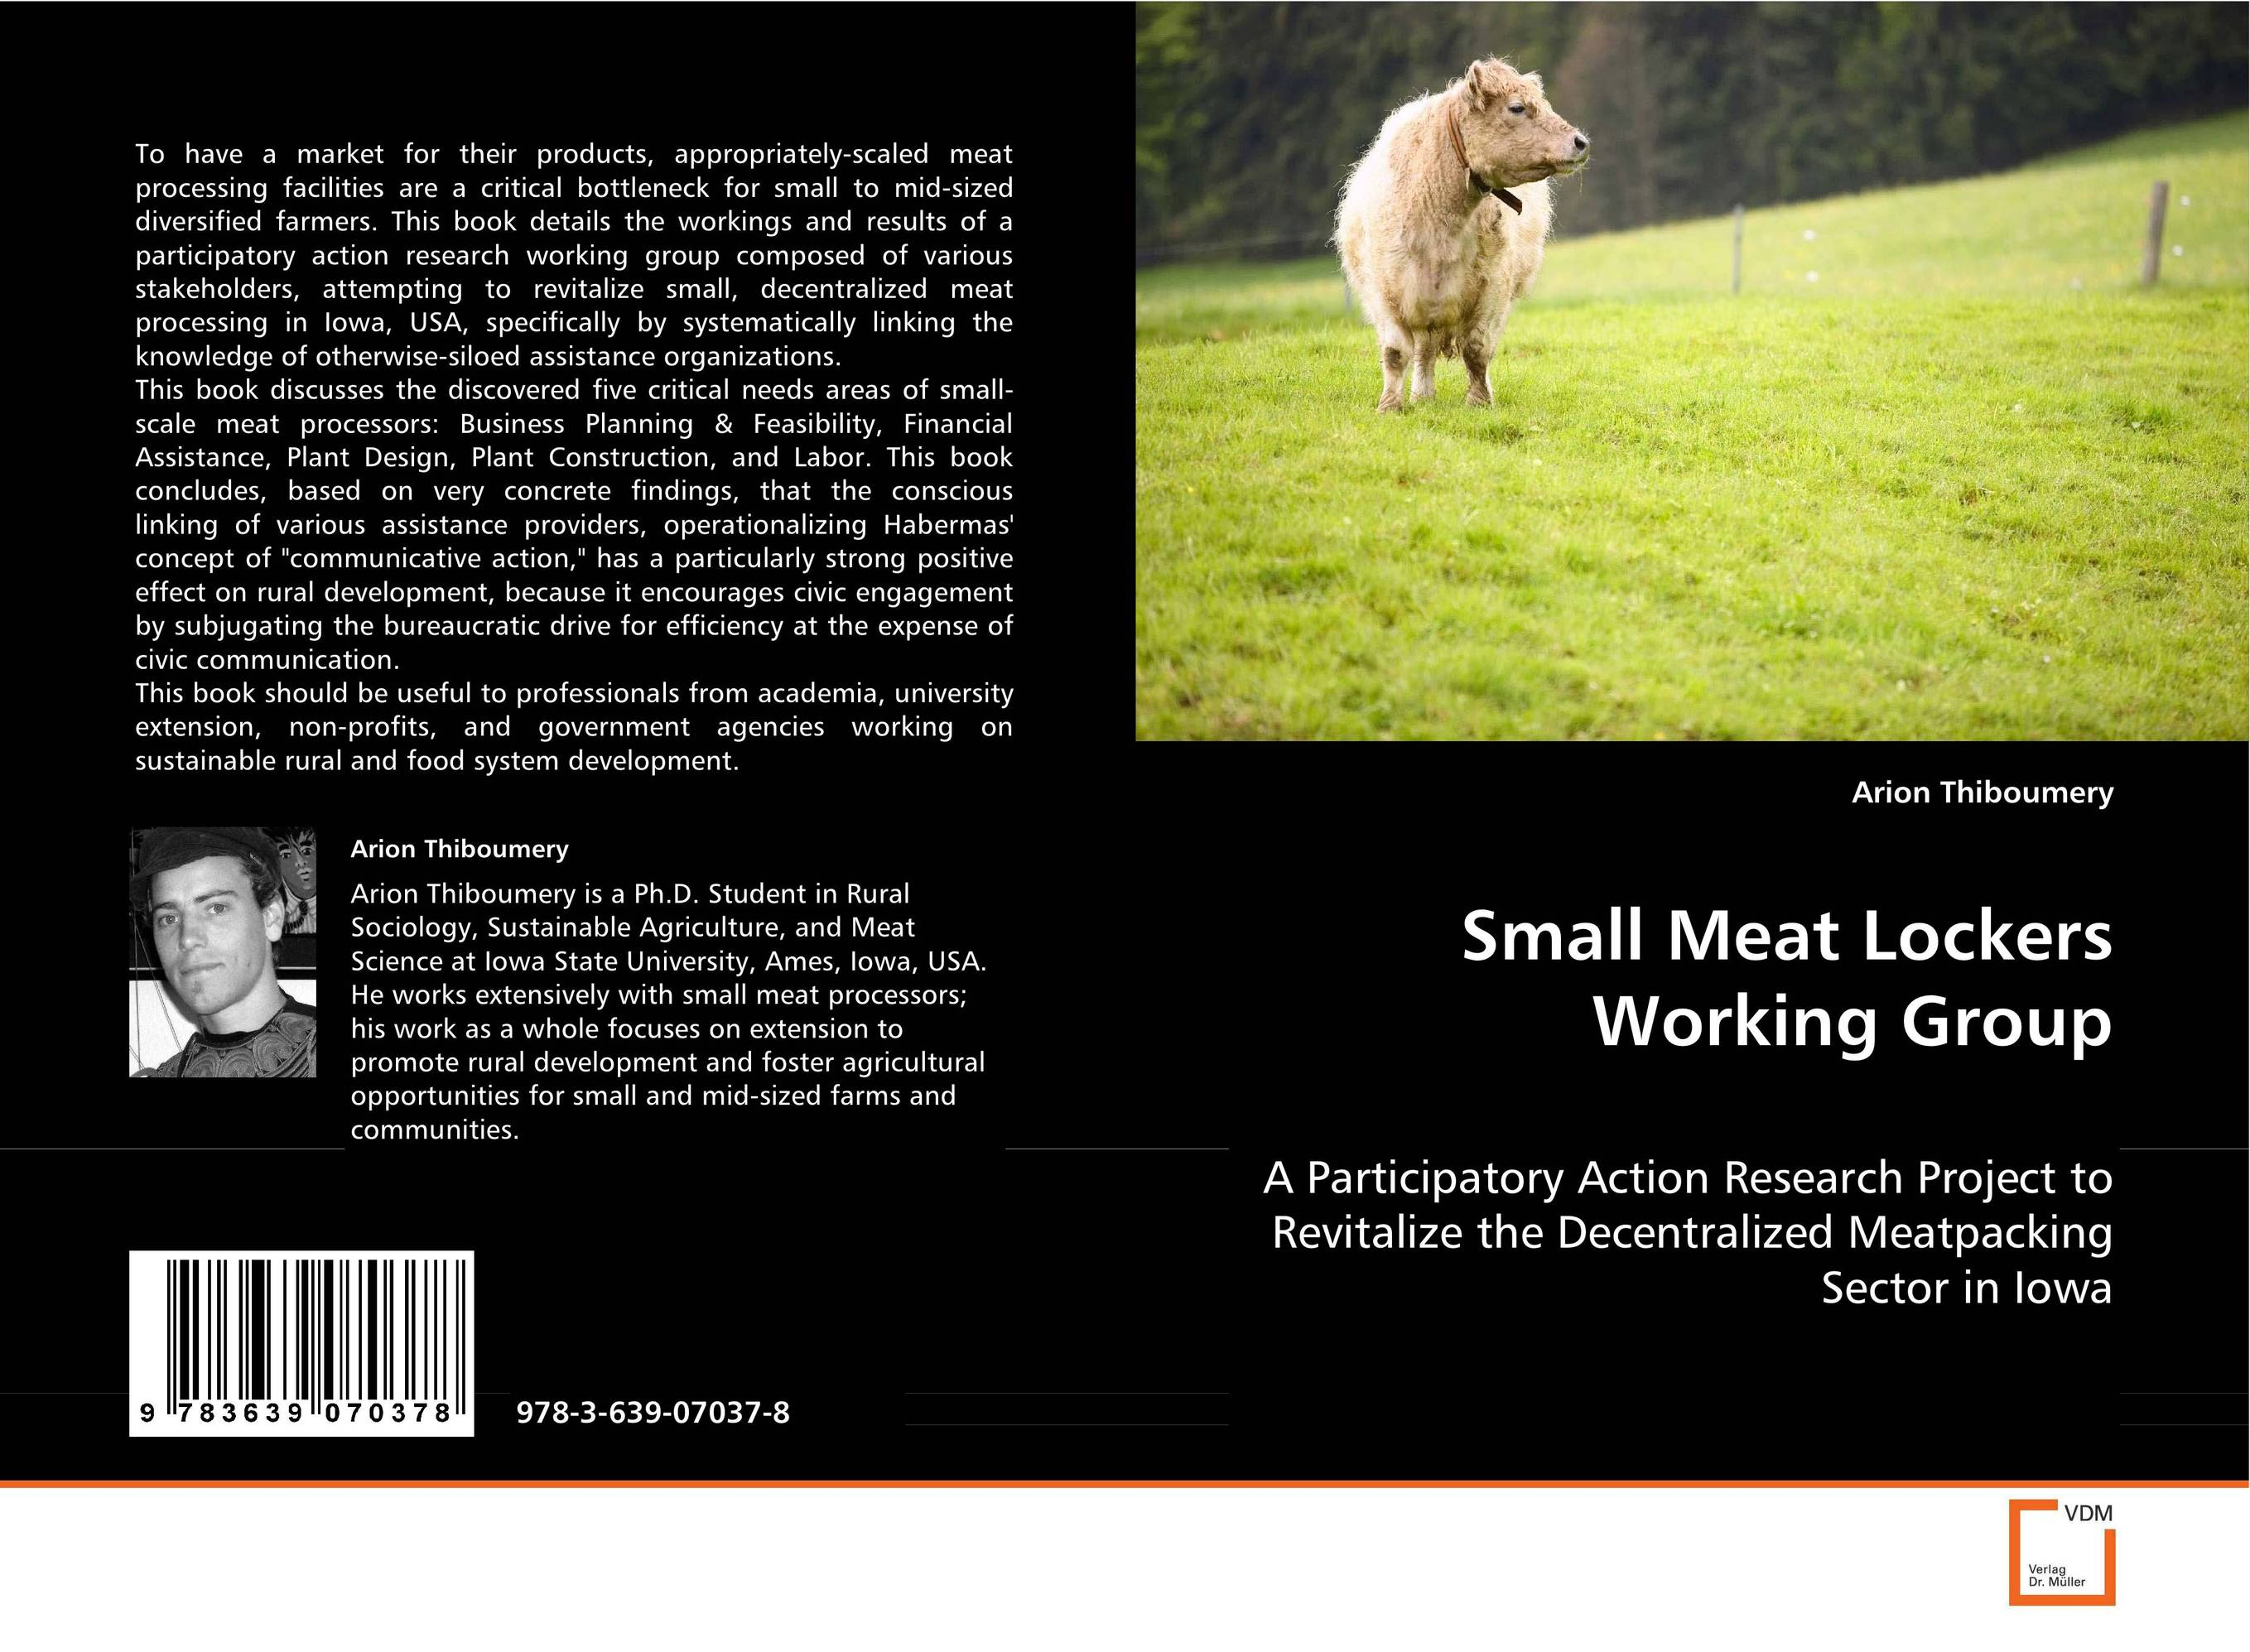 Small Meat Lockers Working Group